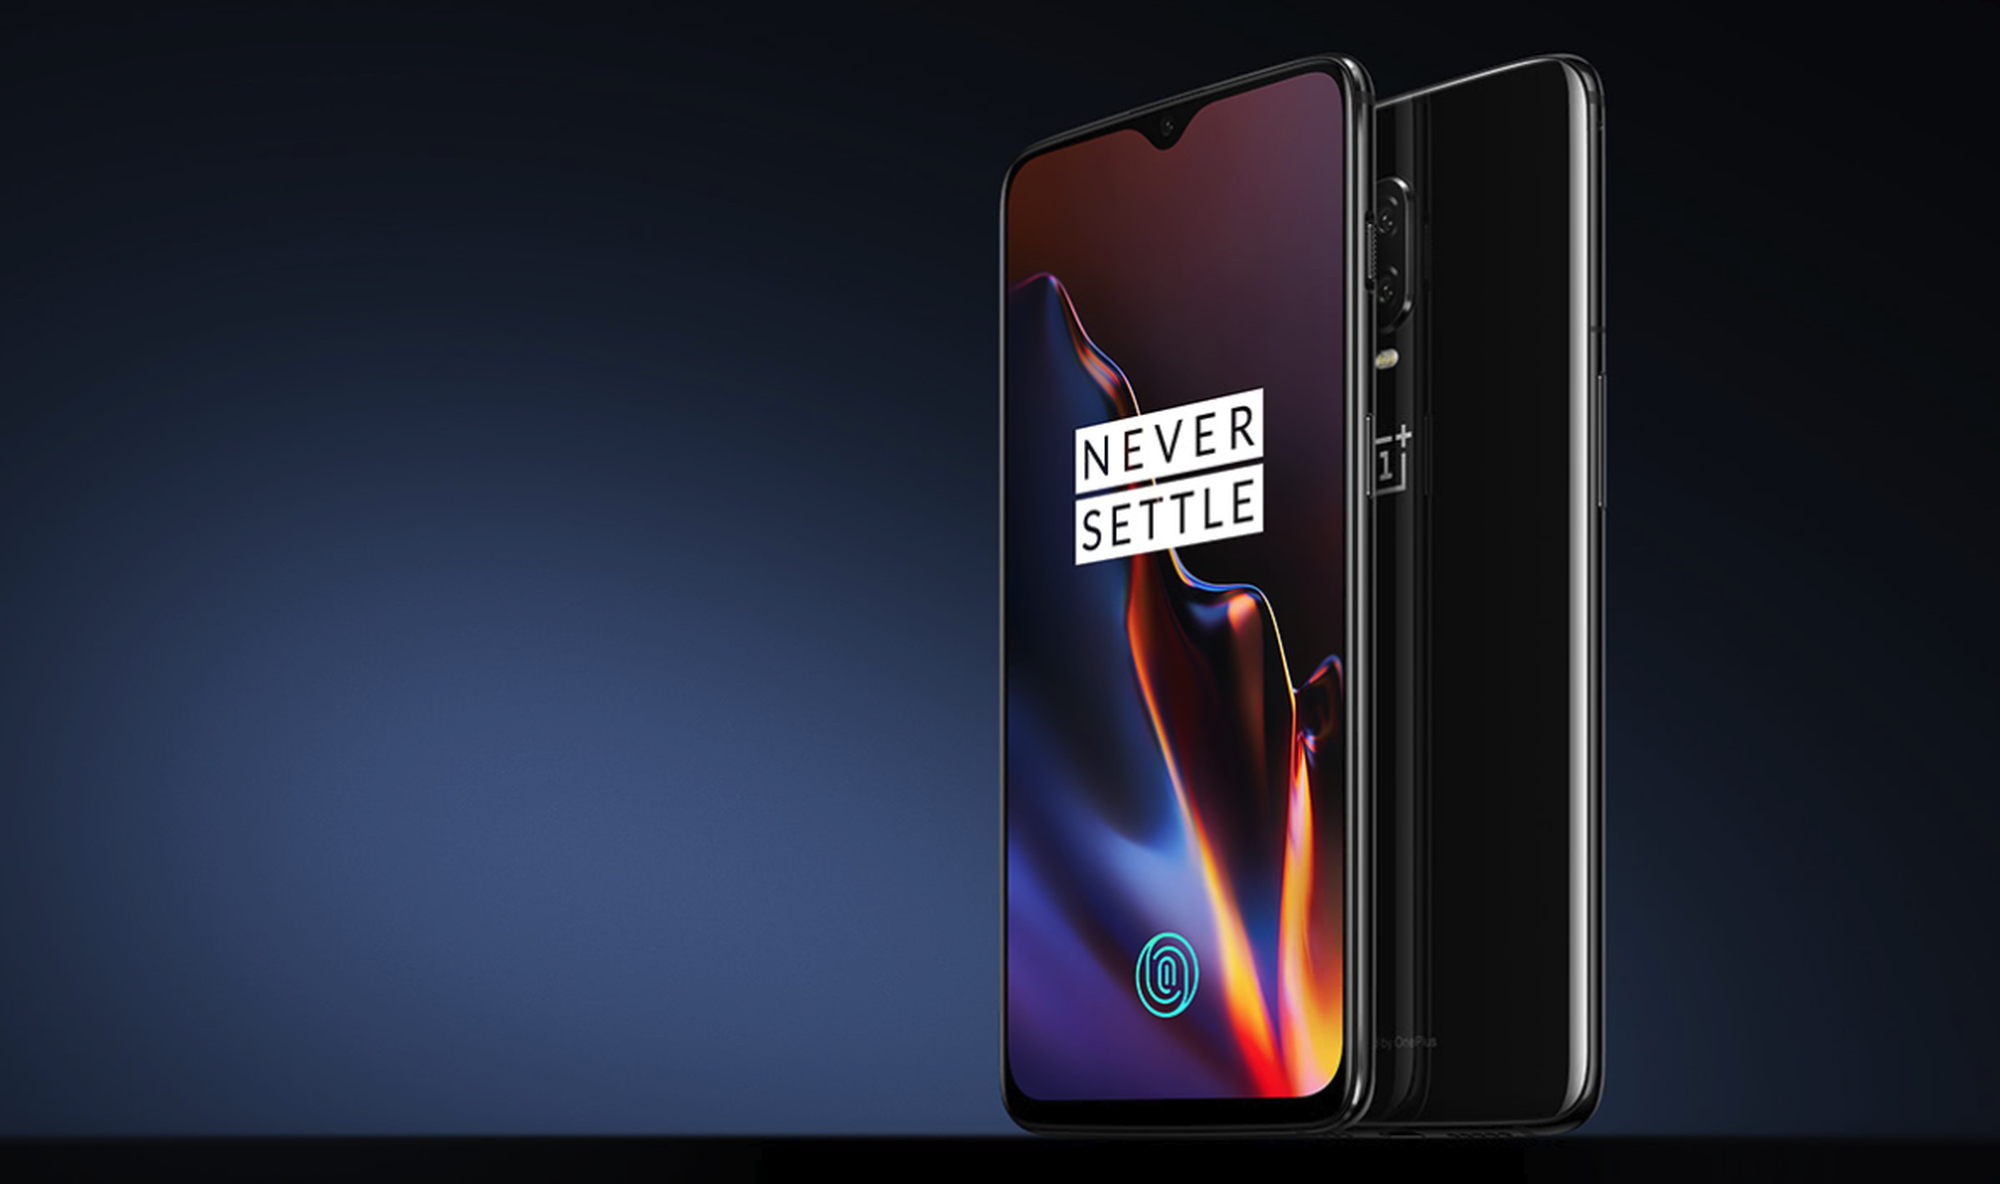 Why buy OnePlus 6T over Poco F1